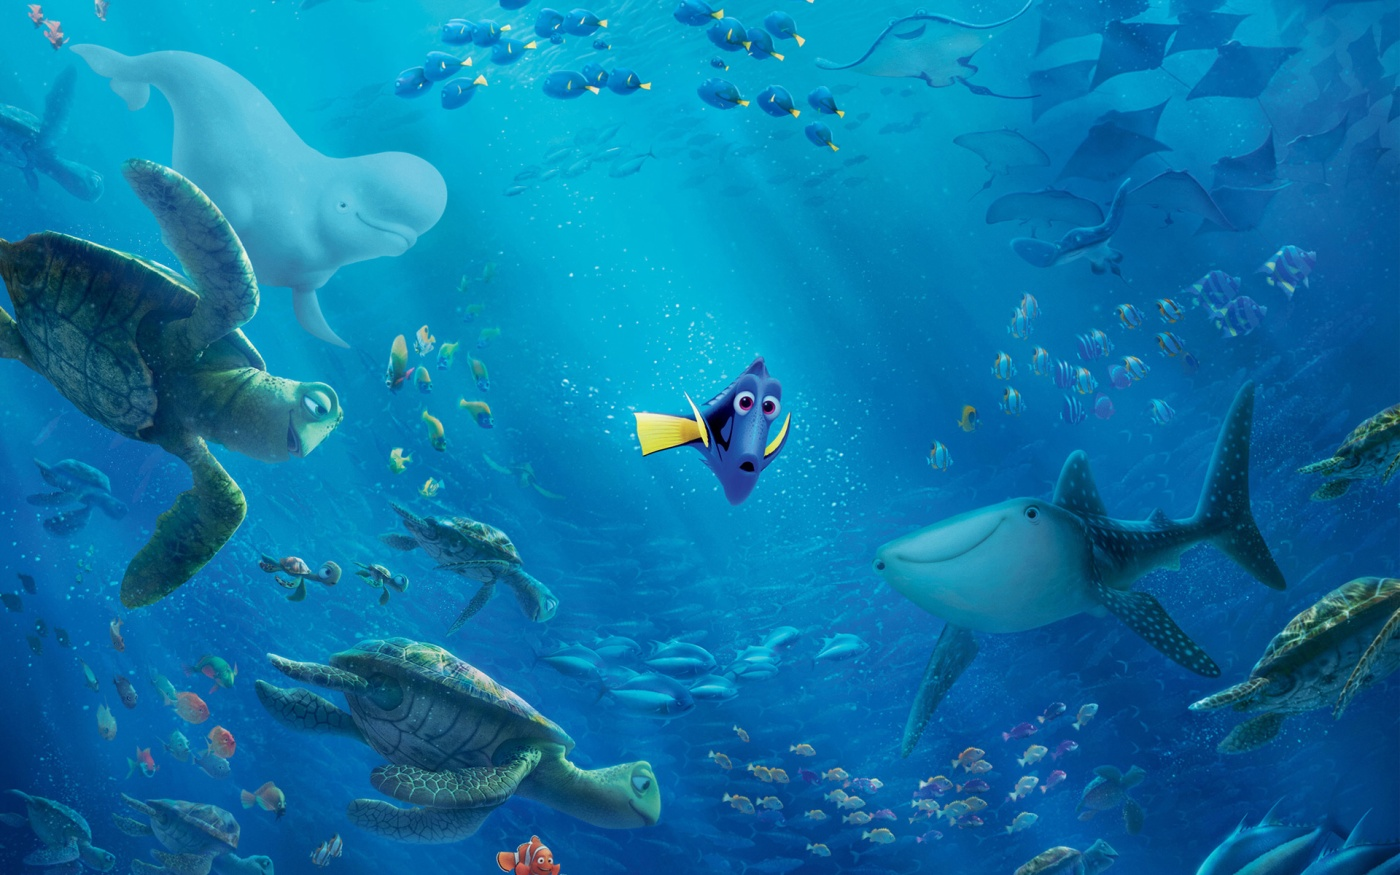 Finding-Dory-Wallpaper-Download